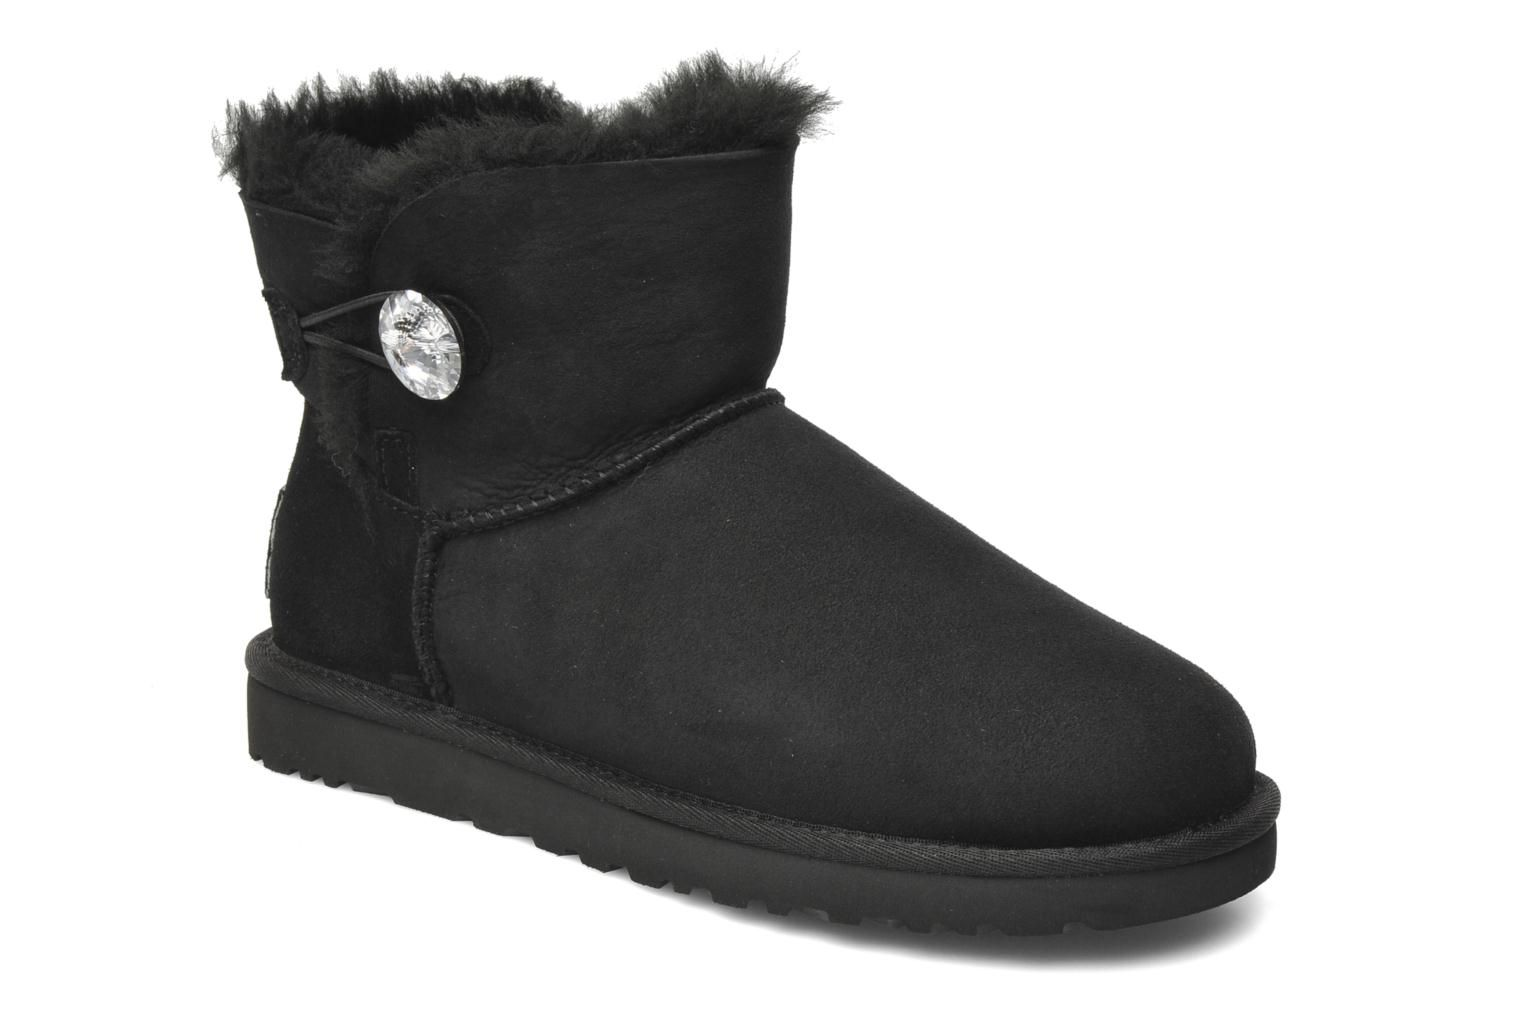 ea0d90fc13d Mini Bailey Button Bling Boot Ugg   Division of Global Affairs